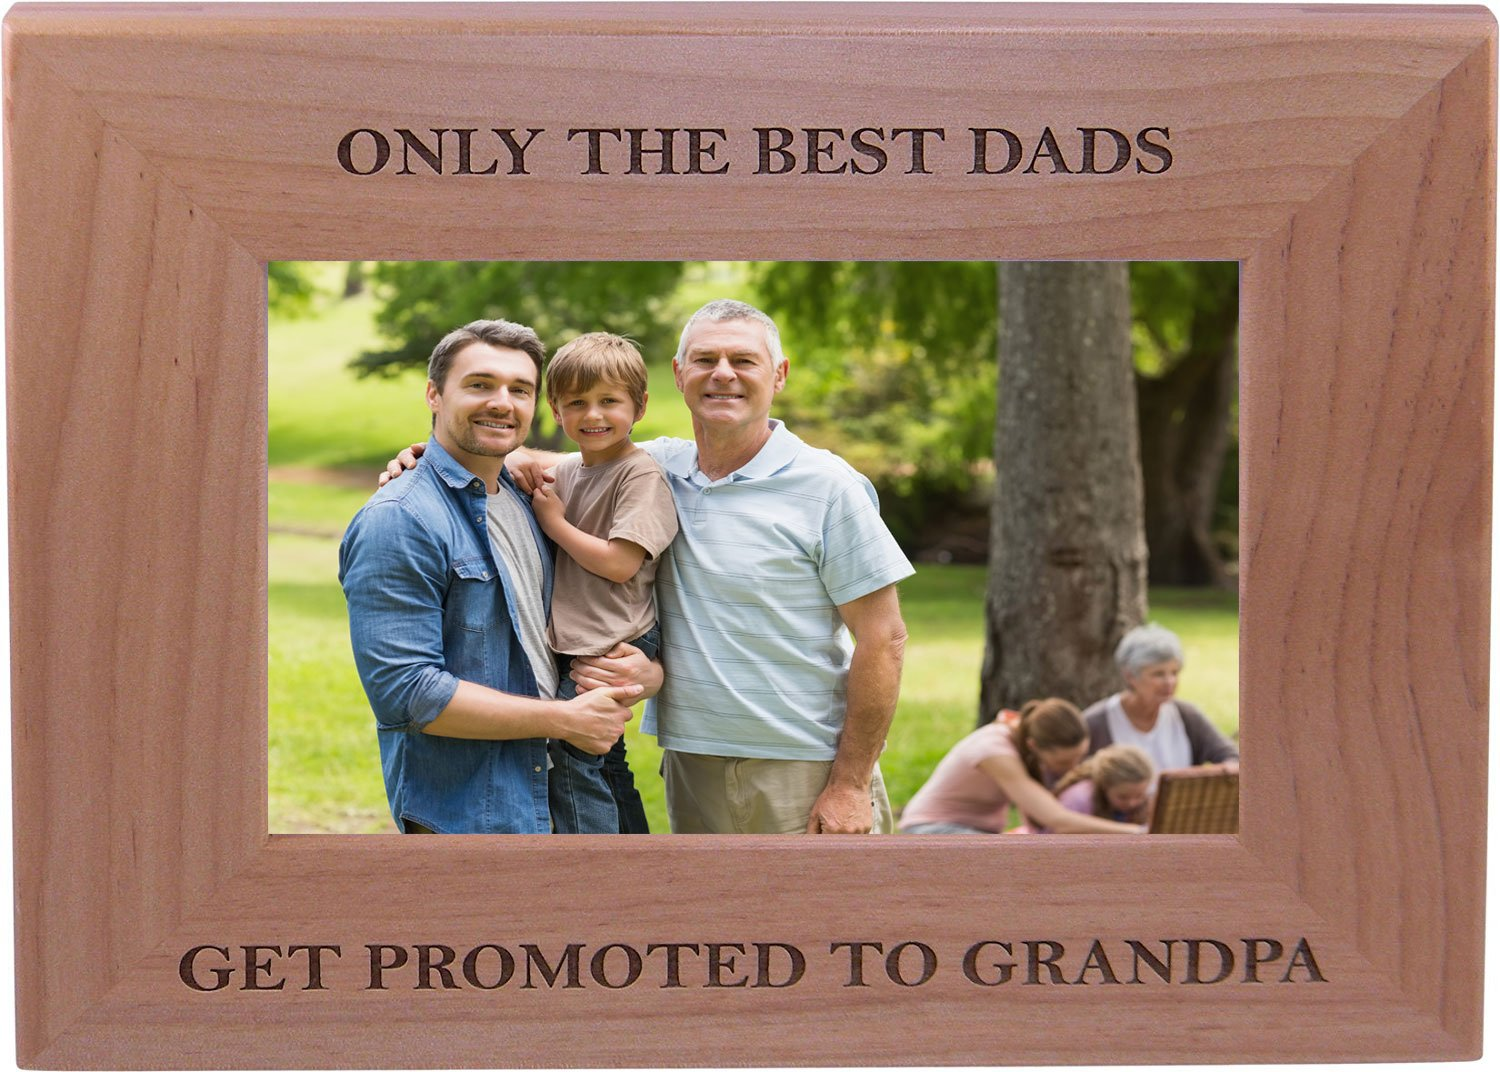 Only The Best Dads Get Promoted to Grandpa 4x6 Inch